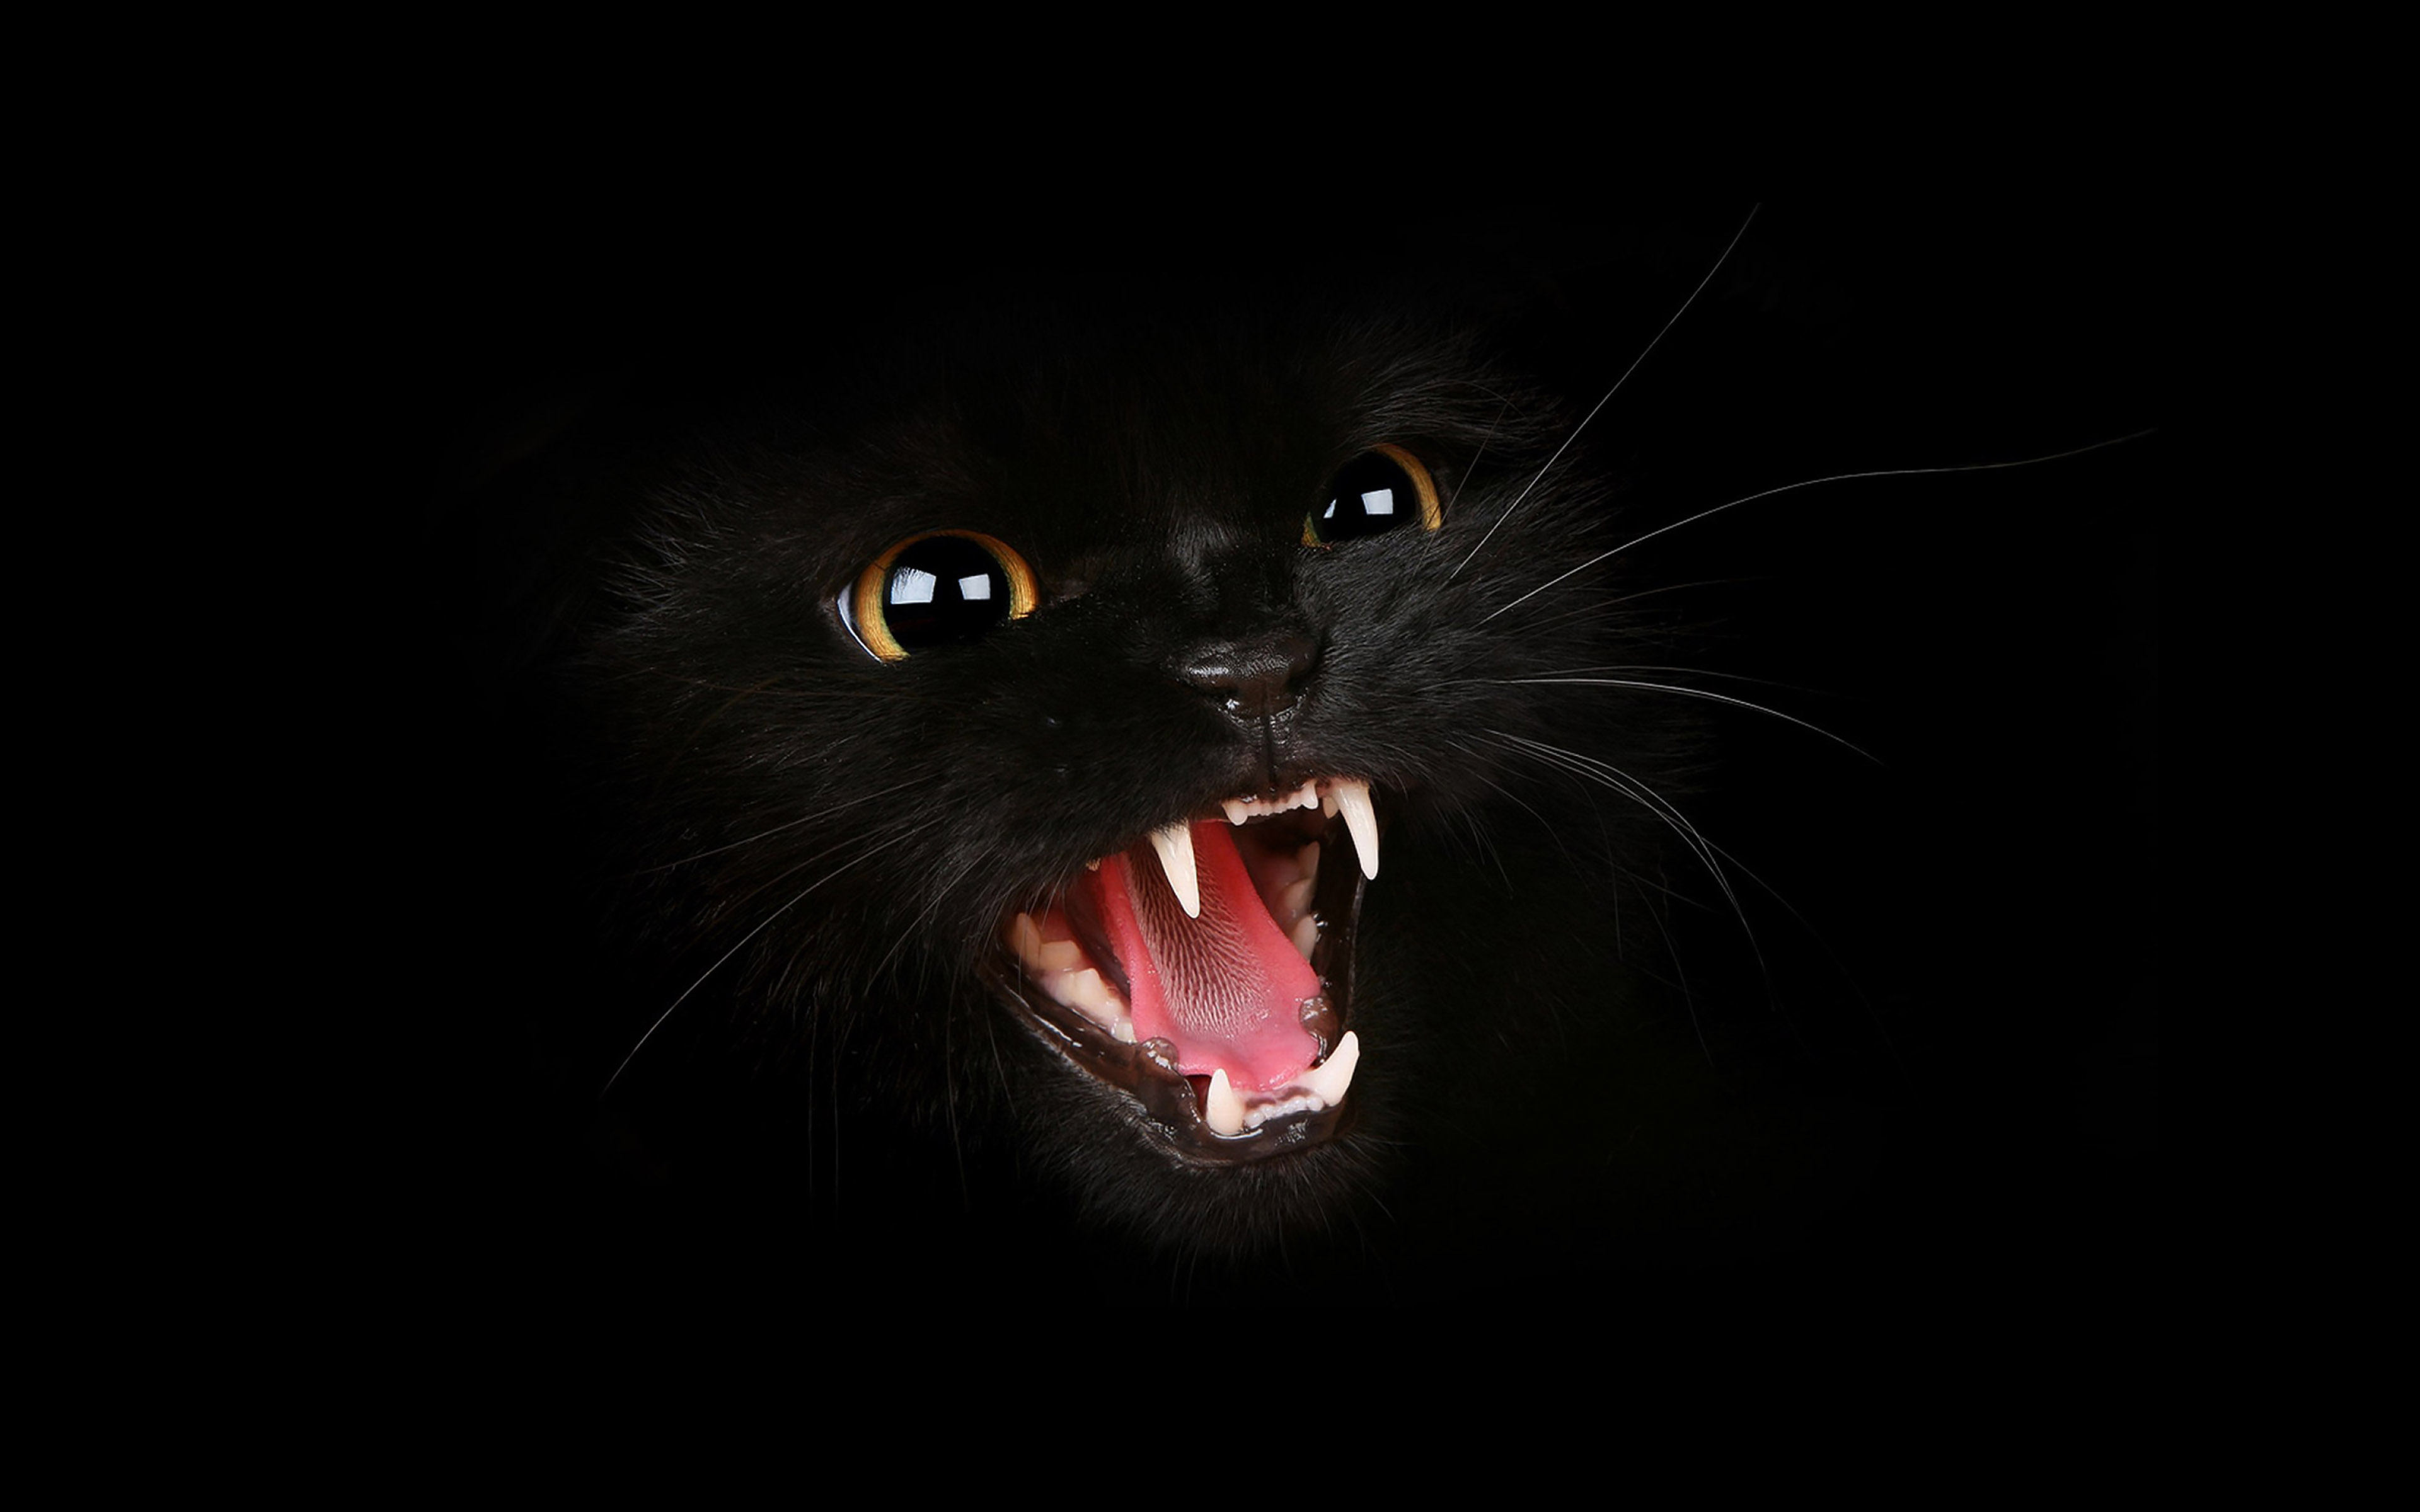 black cat essay The man i married was tender at heart and was particularly fond of animals when he was a child, he was pampered with many different pets, and was at his happiest.